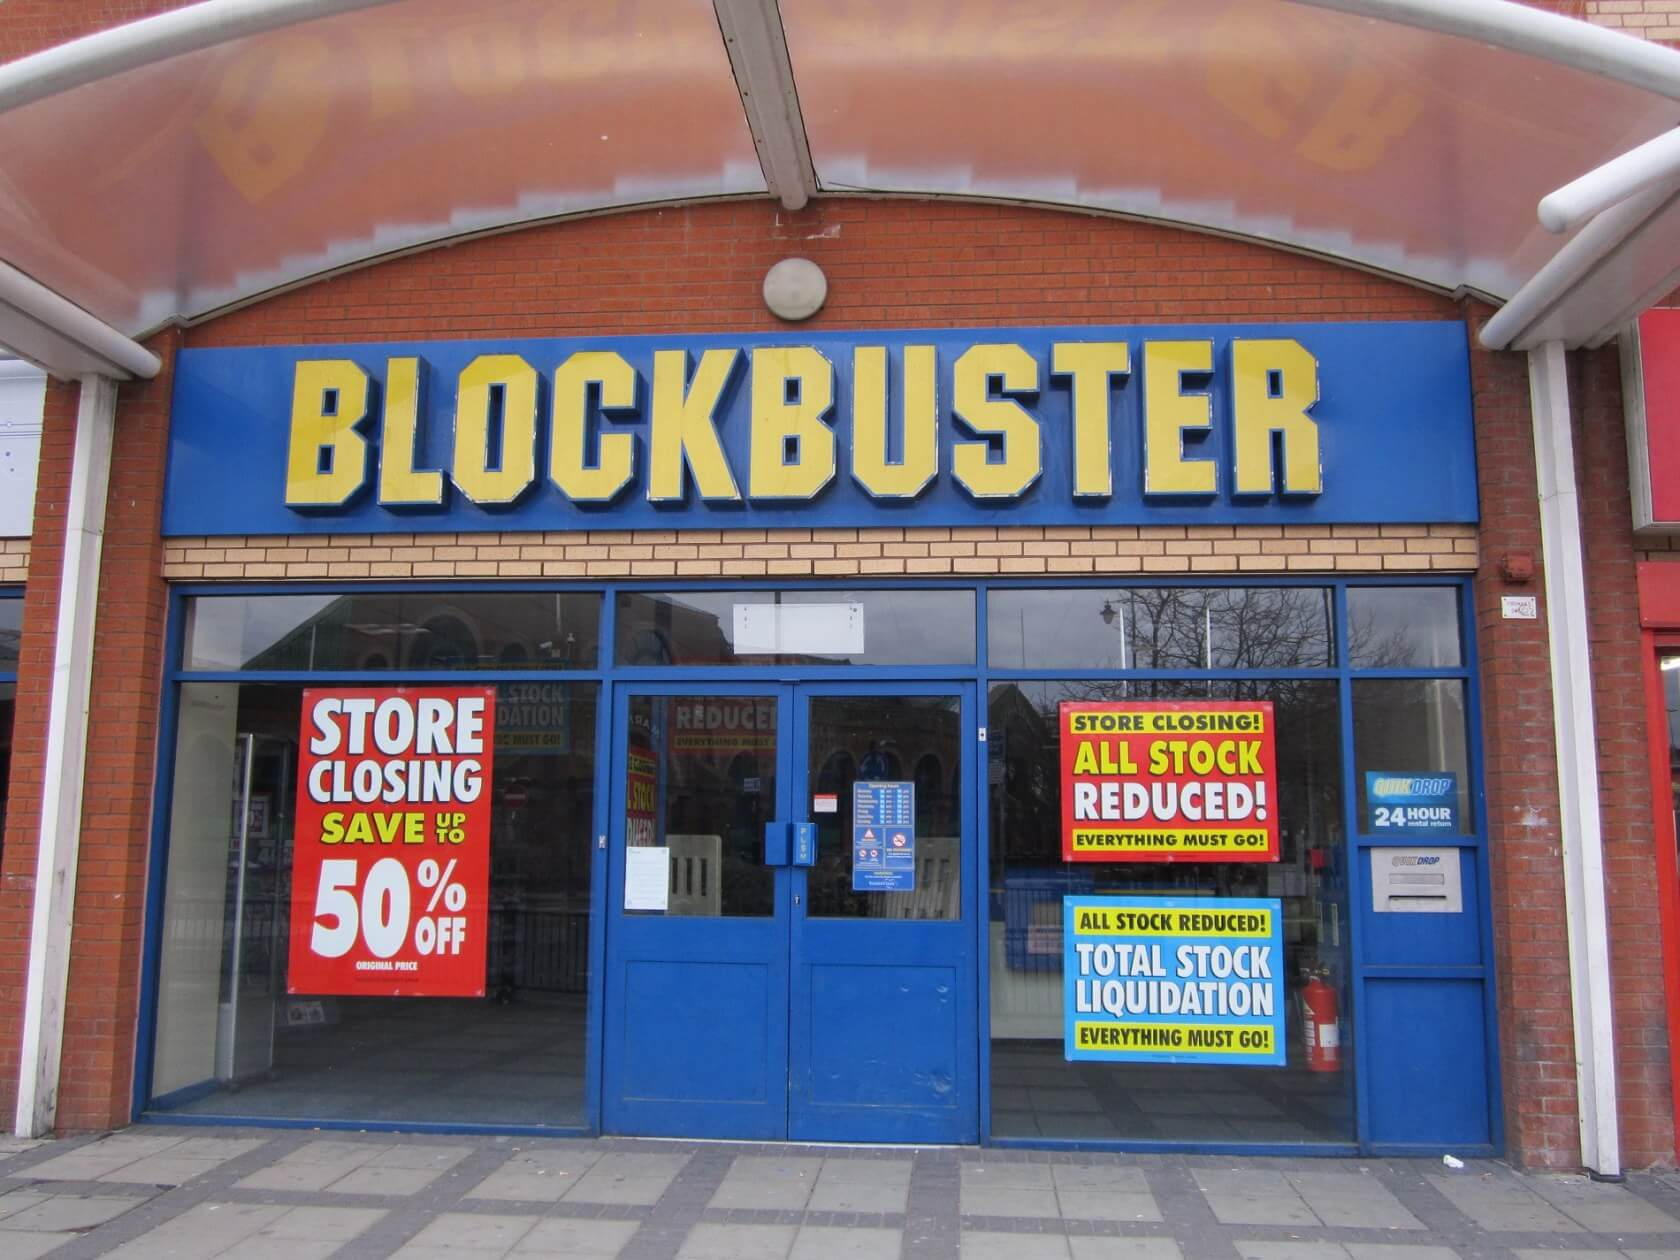 End of watch: Only one Blockbuster remains in the entire country